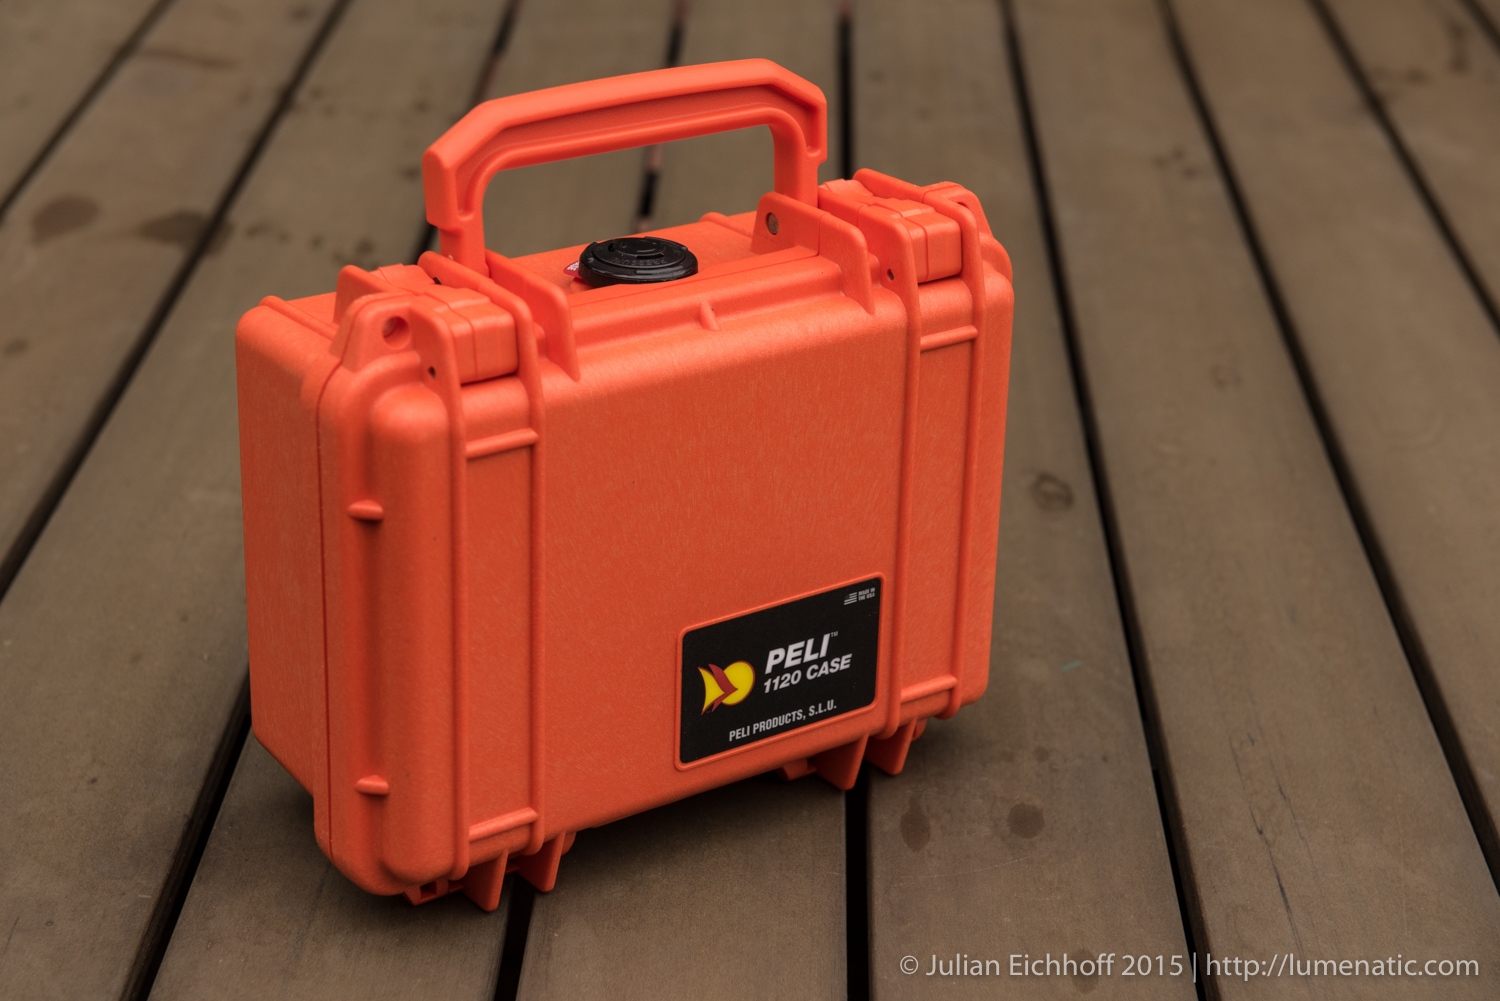 Encase your HDD in a Peli Protector 1120 case